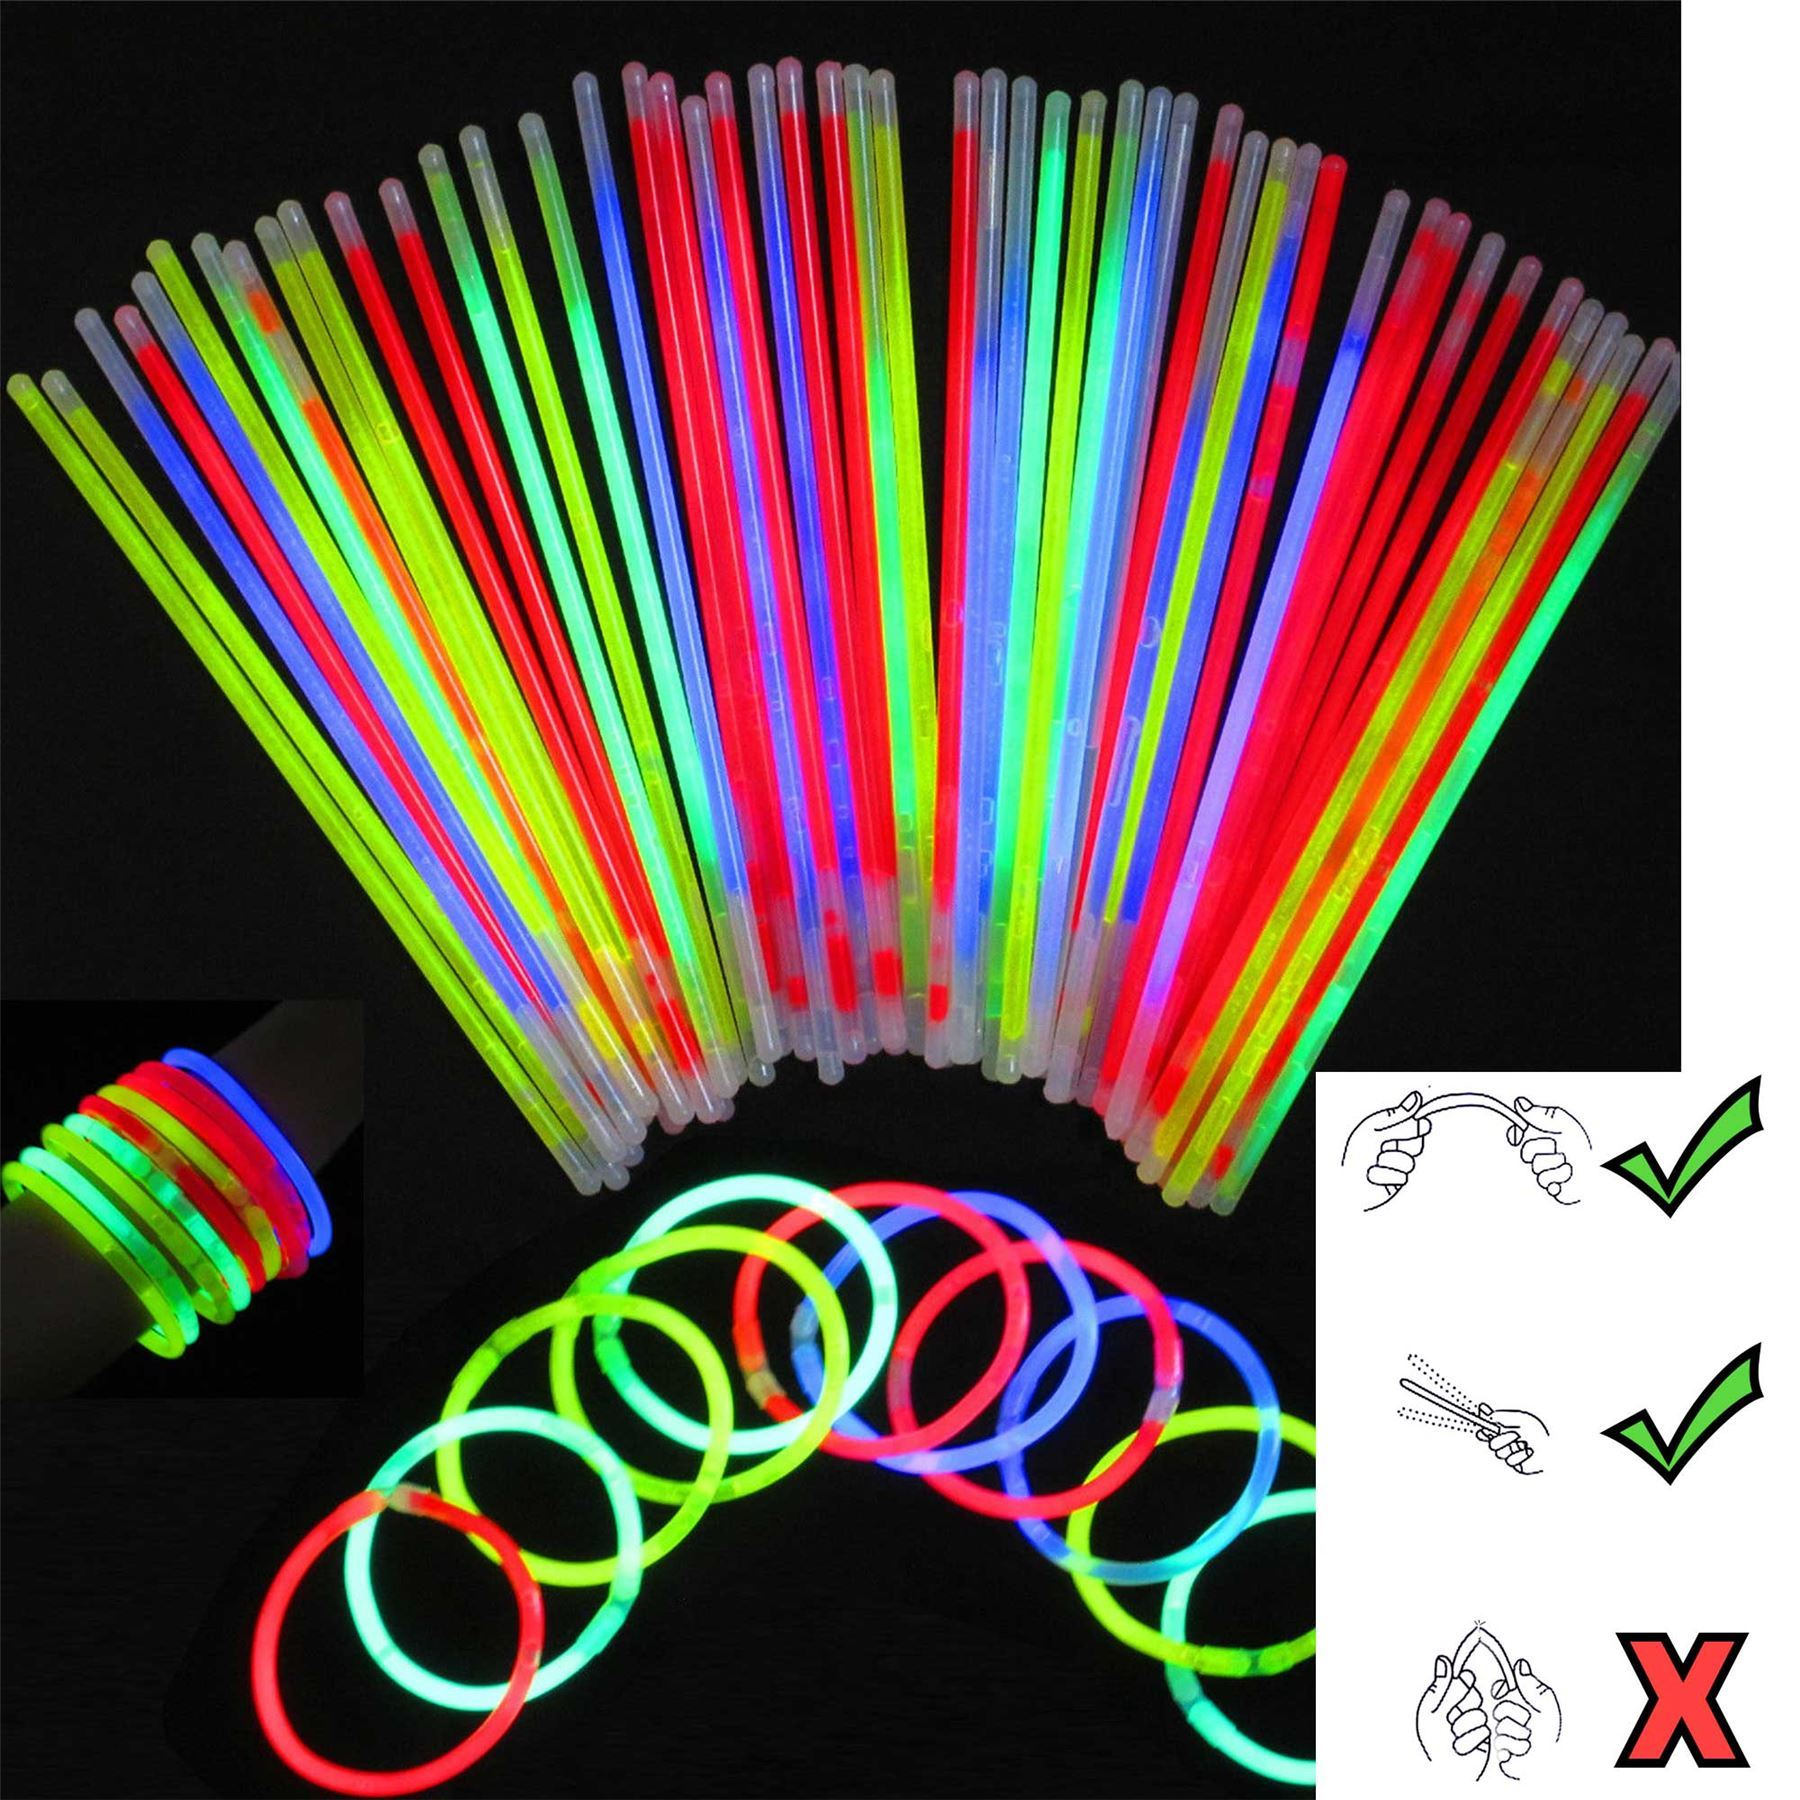 necklace bracelets toys com up glow sticks amazon light glowstick dp games